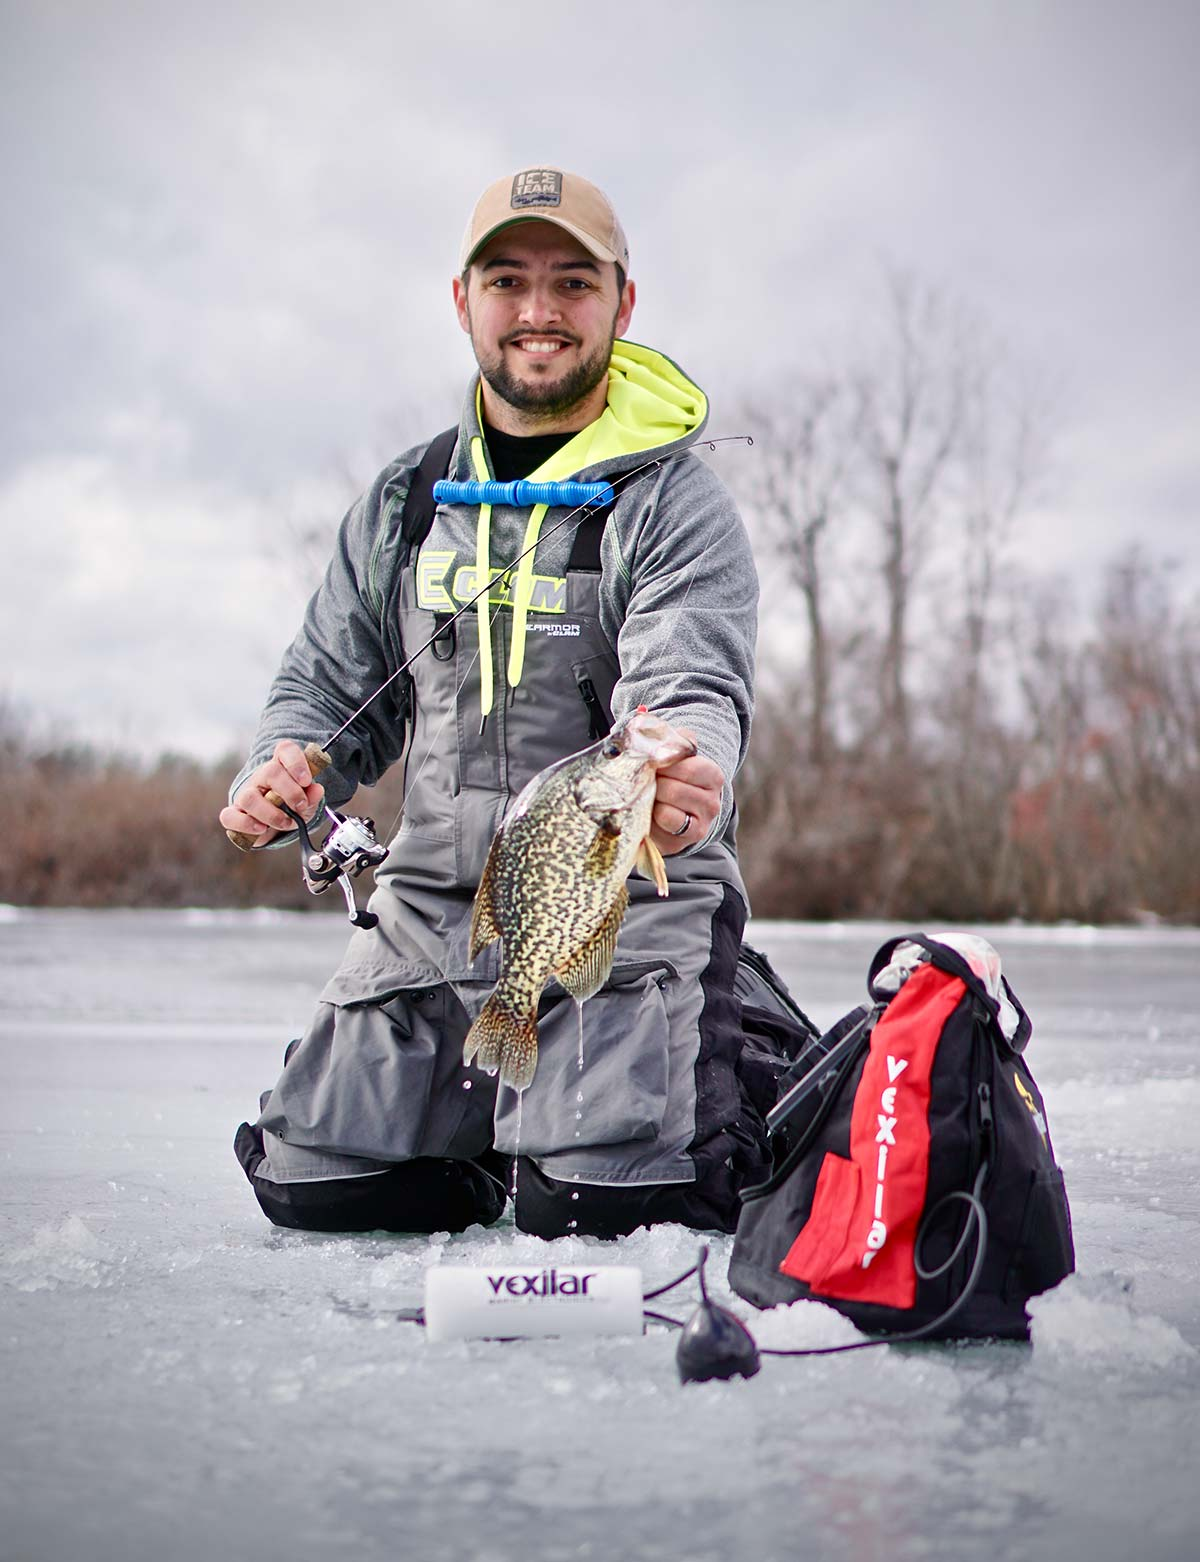 Jigging a set of holes is a mobile method of hunting down fish, similar to fishing open water in a boat or walking the shoreline. Add a flasher to the mix to improve your odds and increase success!